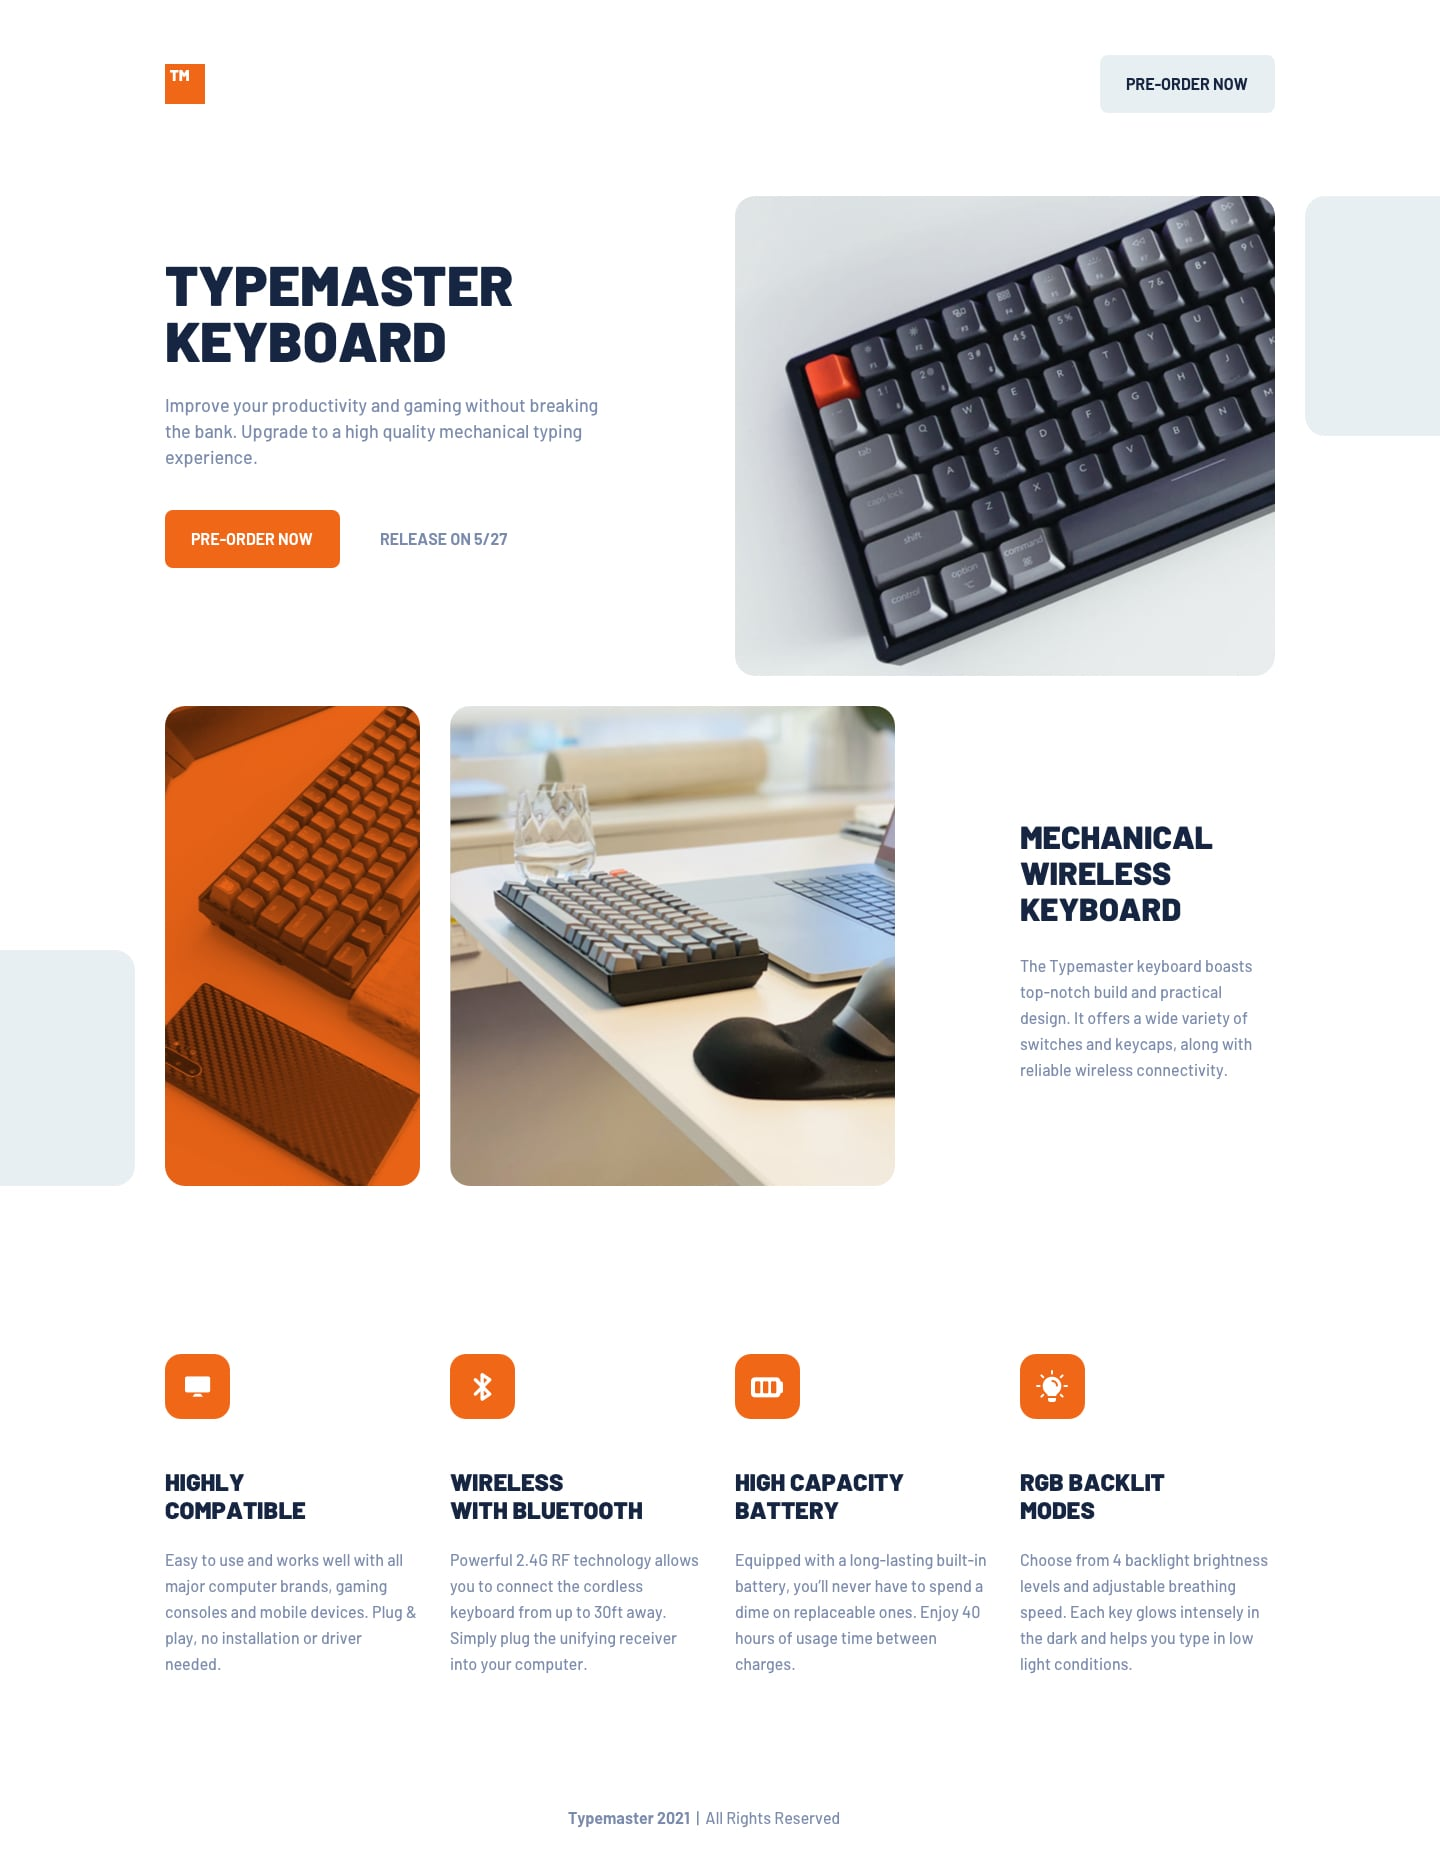 Design preview for Typemaster pre-launch landing page coding challenge